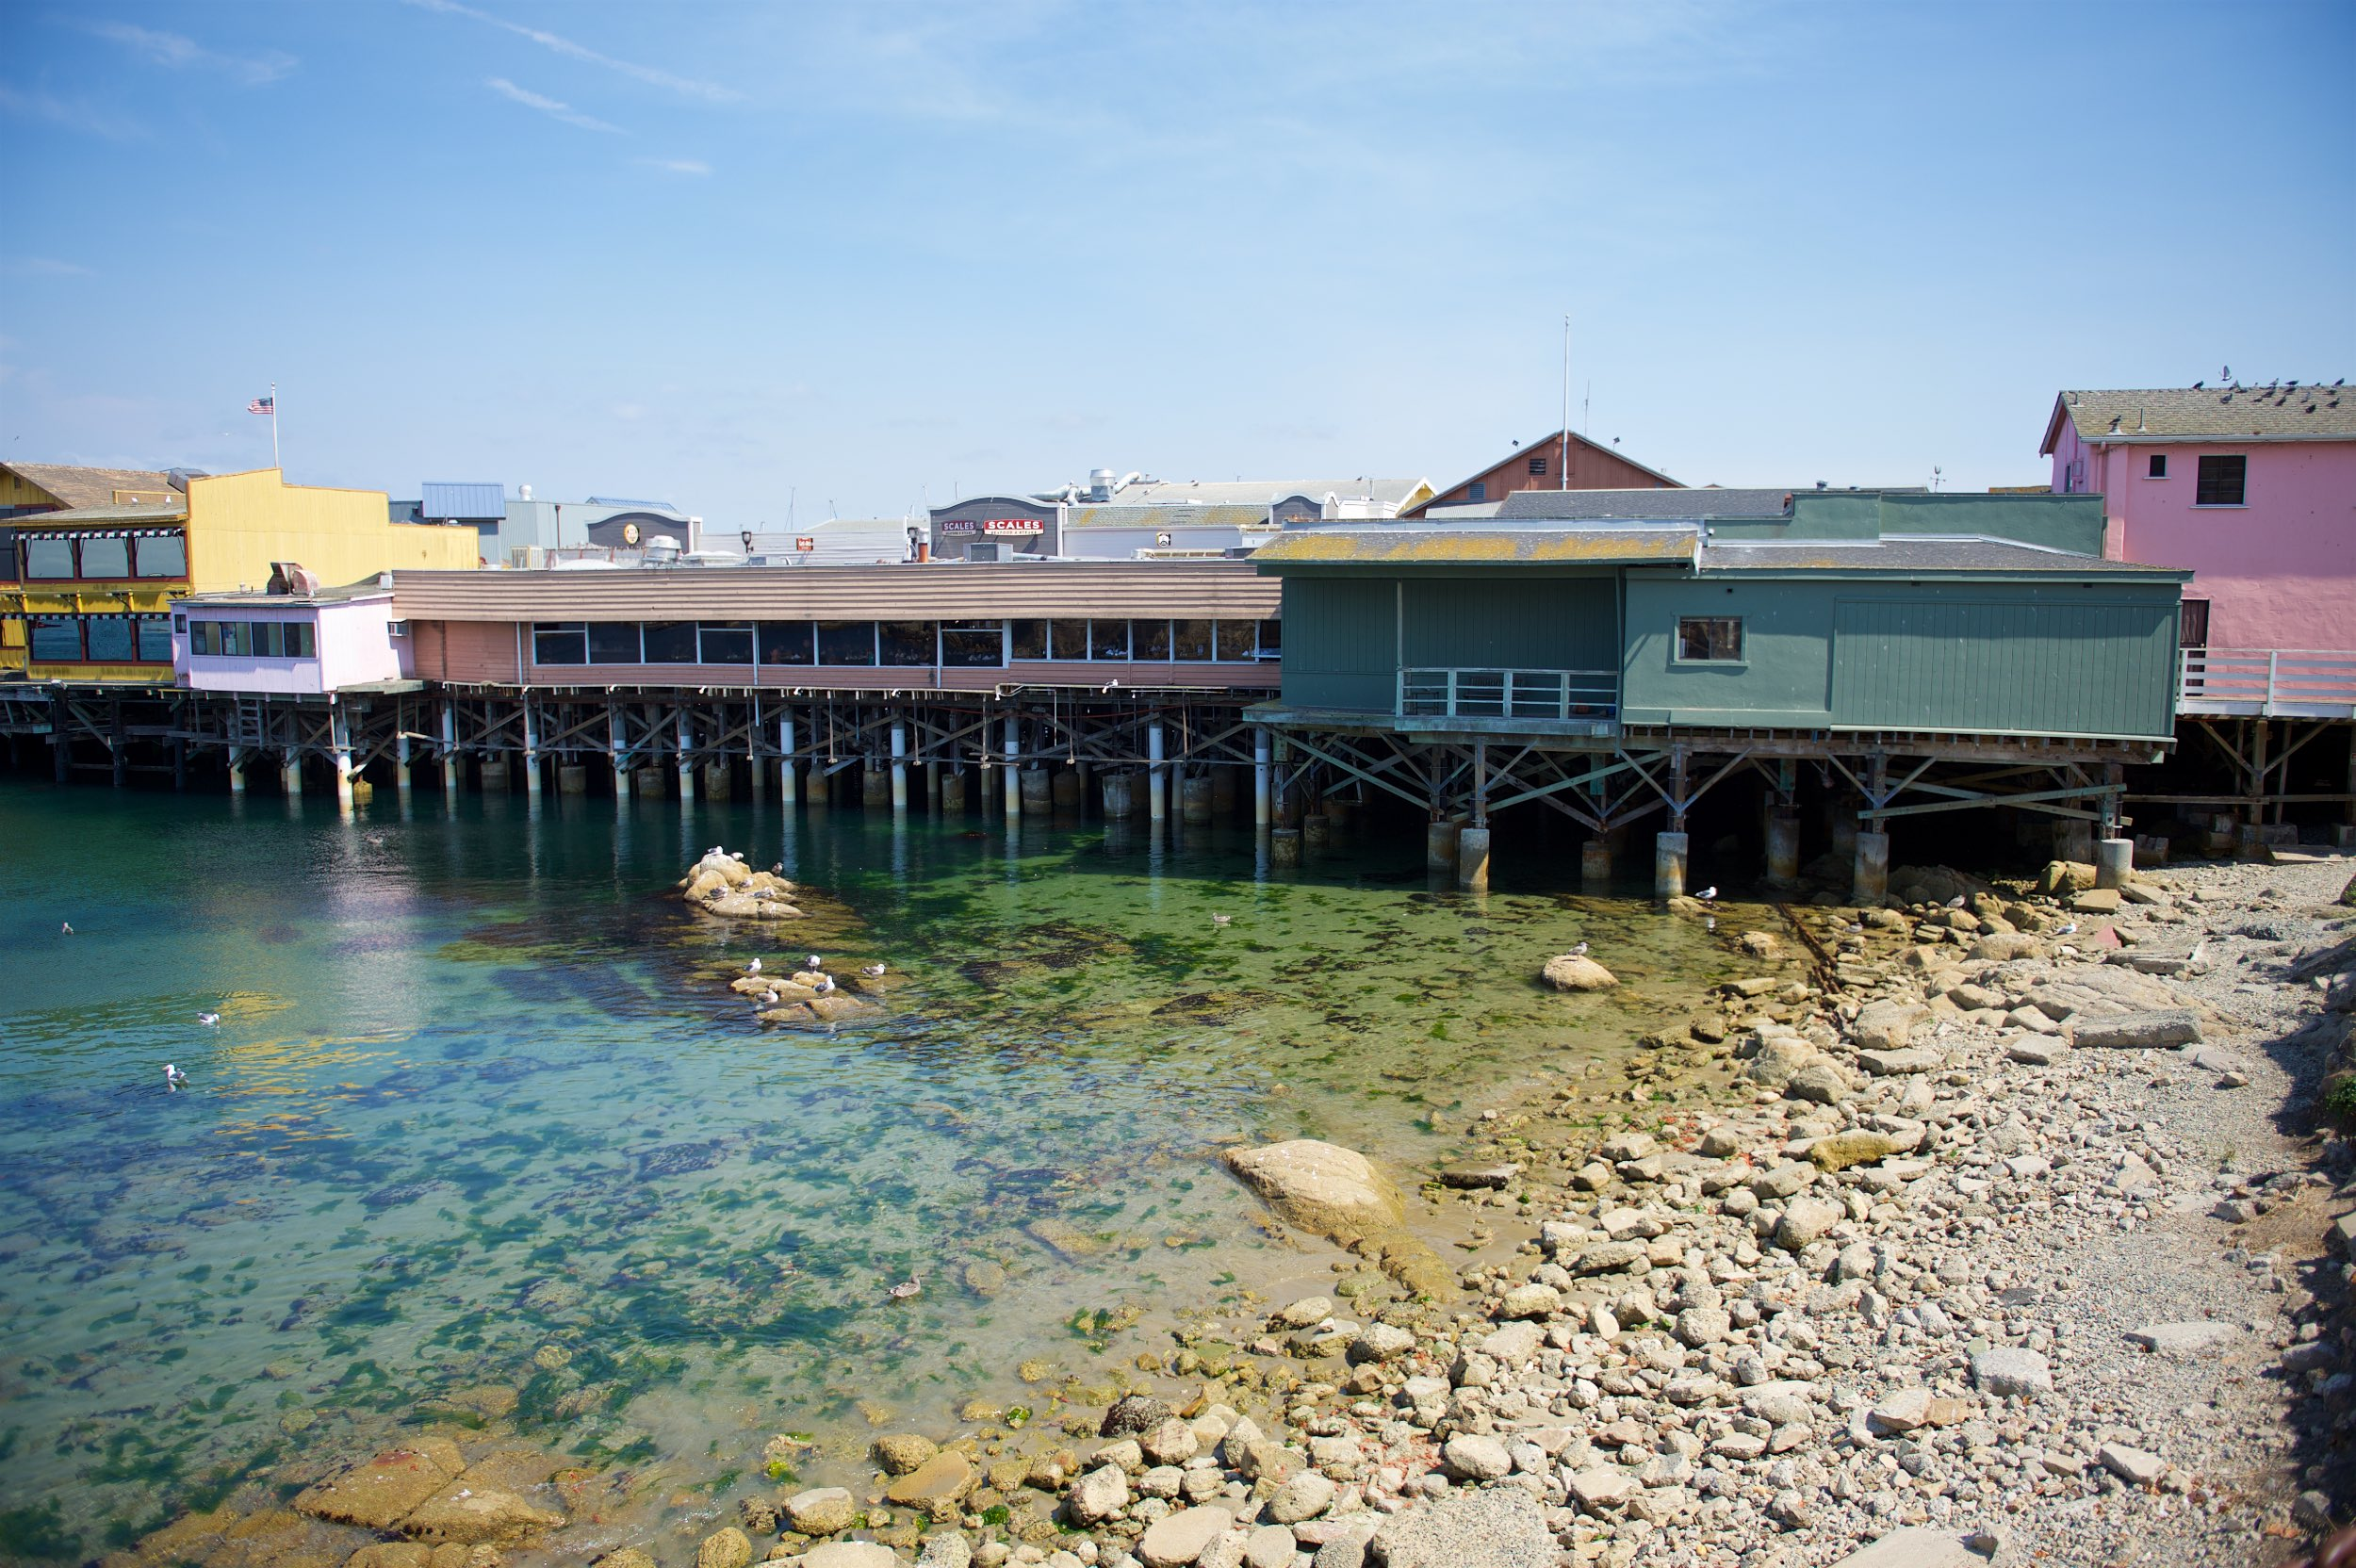 old-whaling-station-and-surrounds-2016-08-26-007.jpg